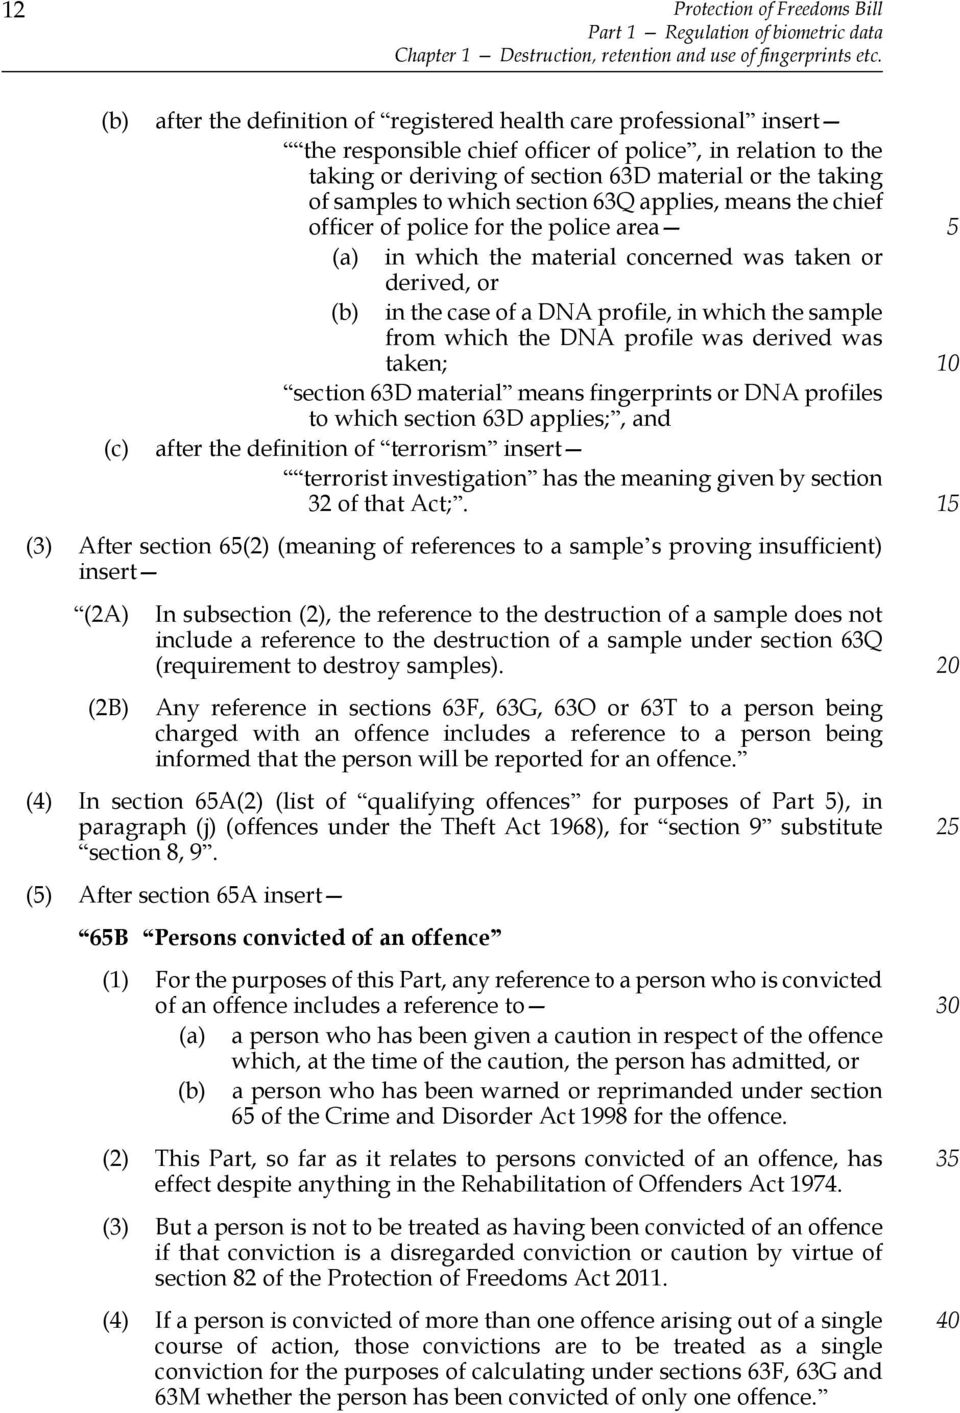 samples to which section 63Q applies, means the chief officer of police for the police area (a) in which the material concerned was taken or derived, or (b) in the case of a DNA profile, in which the